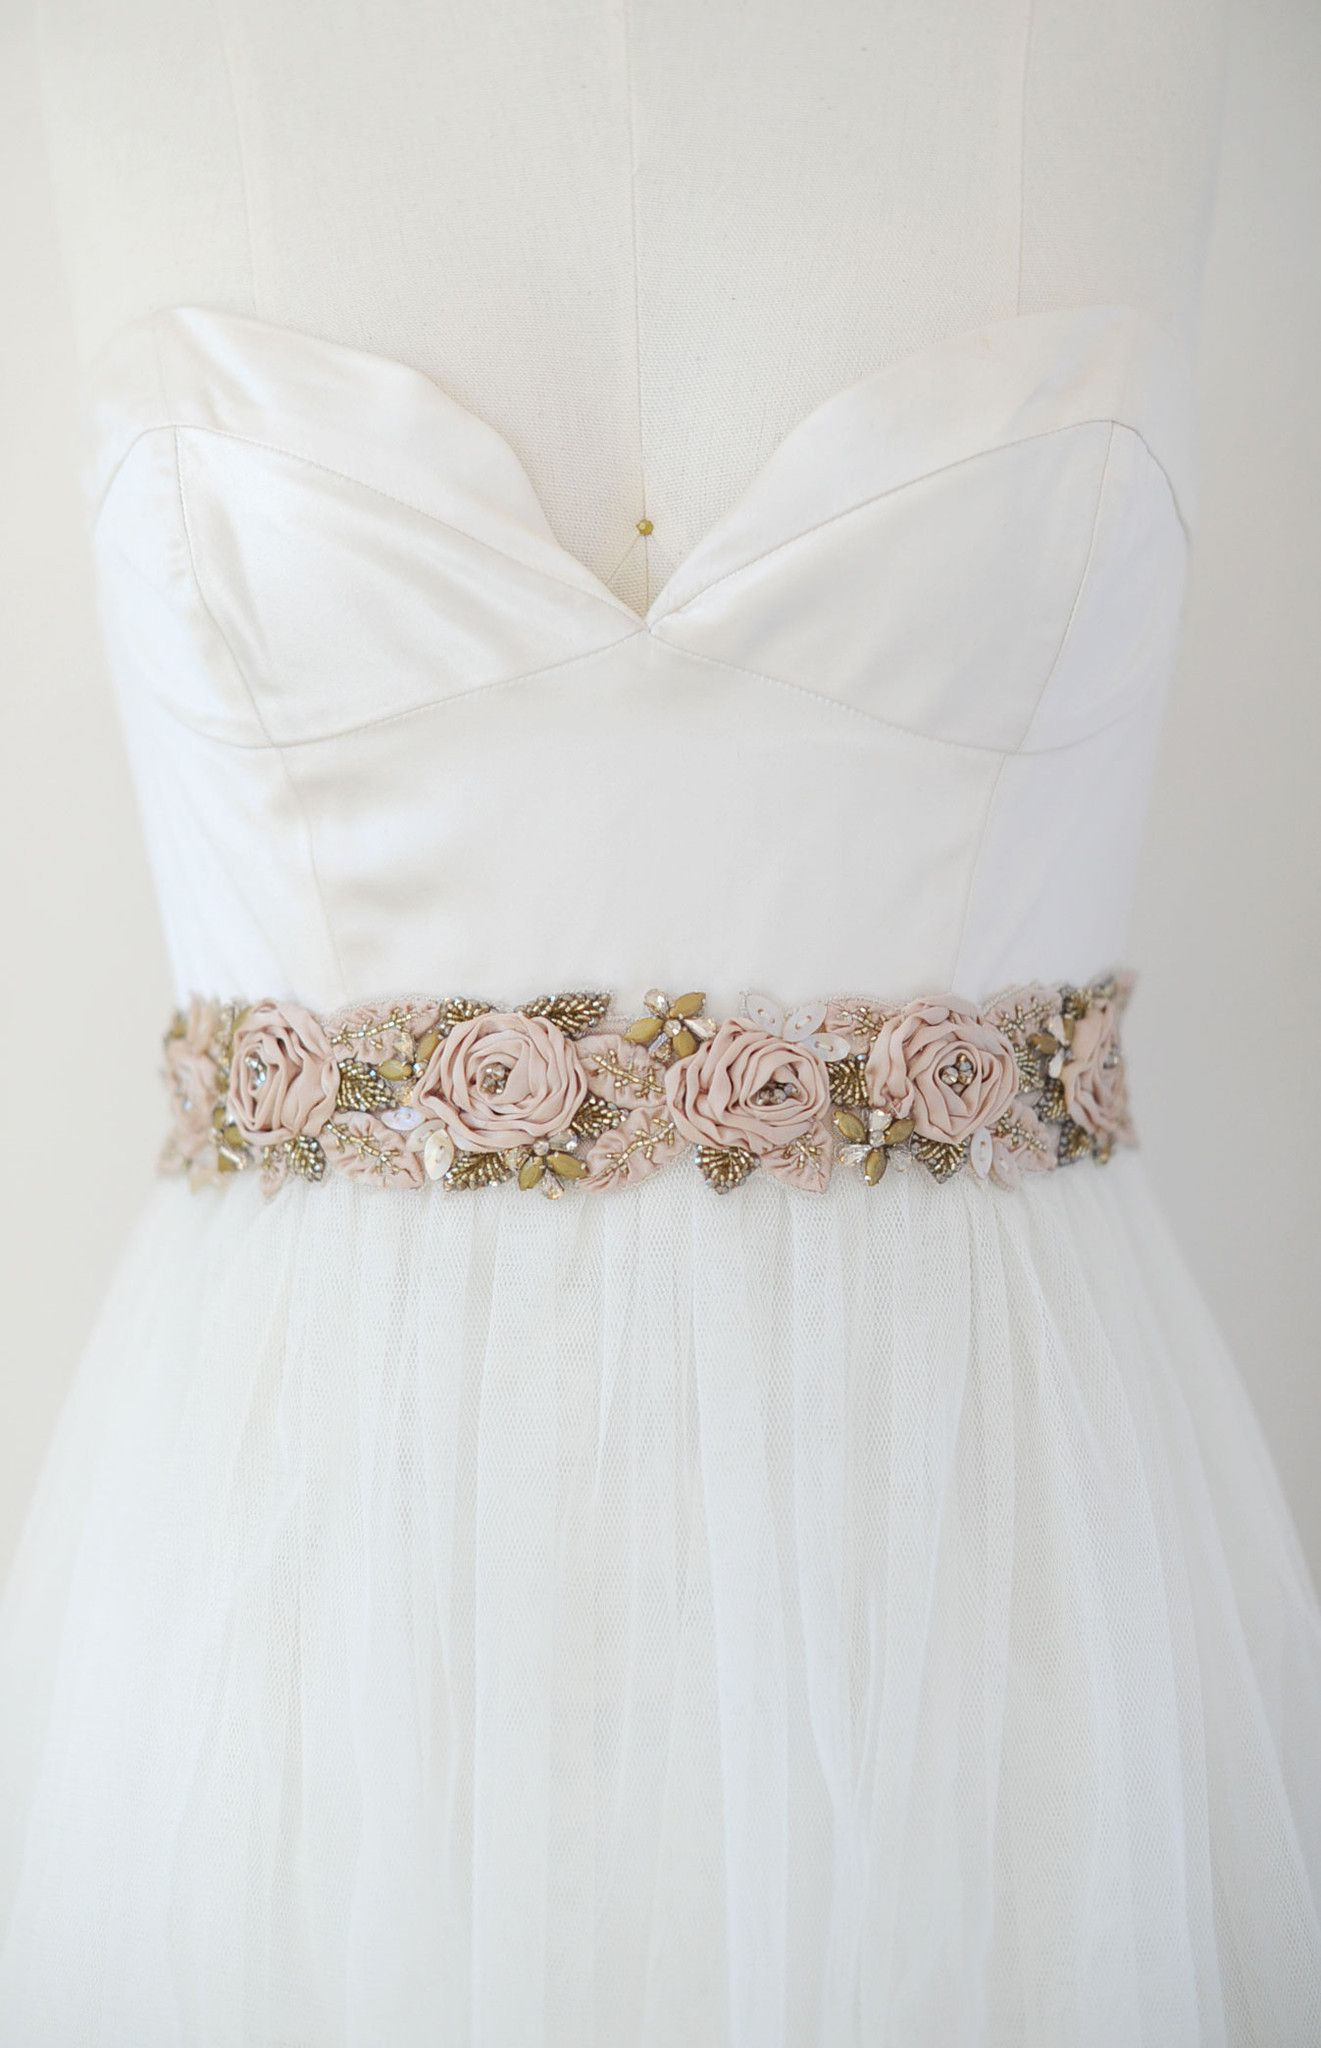 Antique silk rose and crystal headwrap/sash - Style #550 | Themed ...